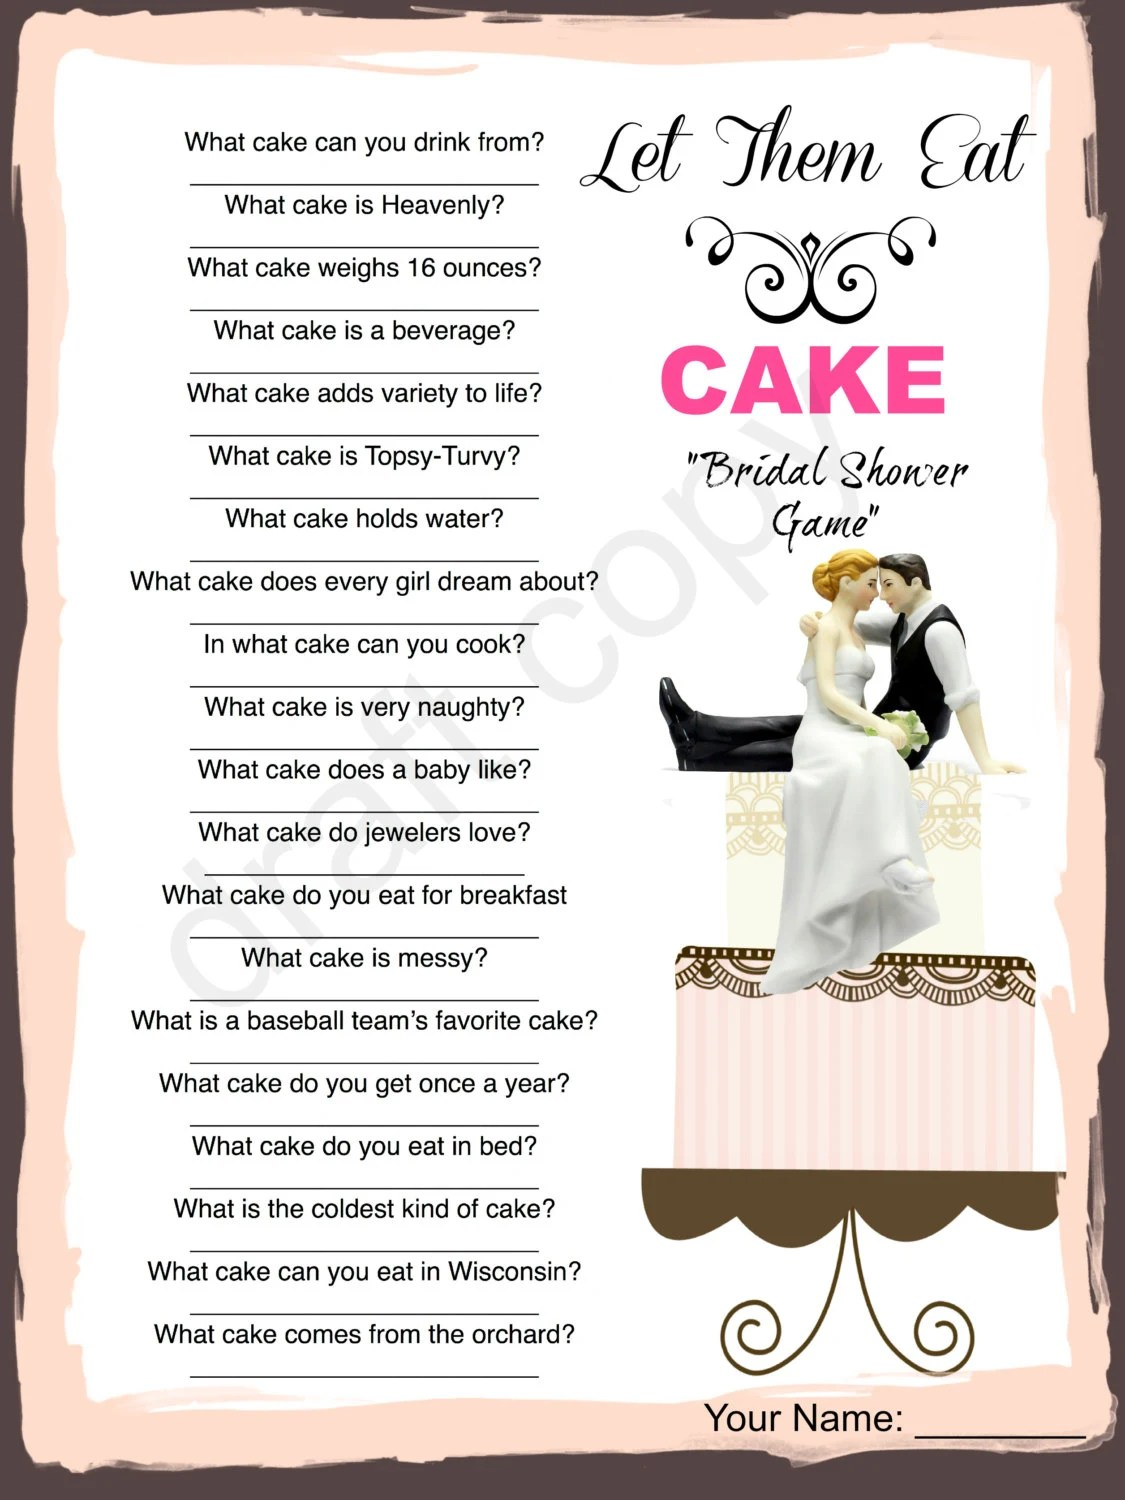 Bridal shower game cake trivia instant download, quiz without answers